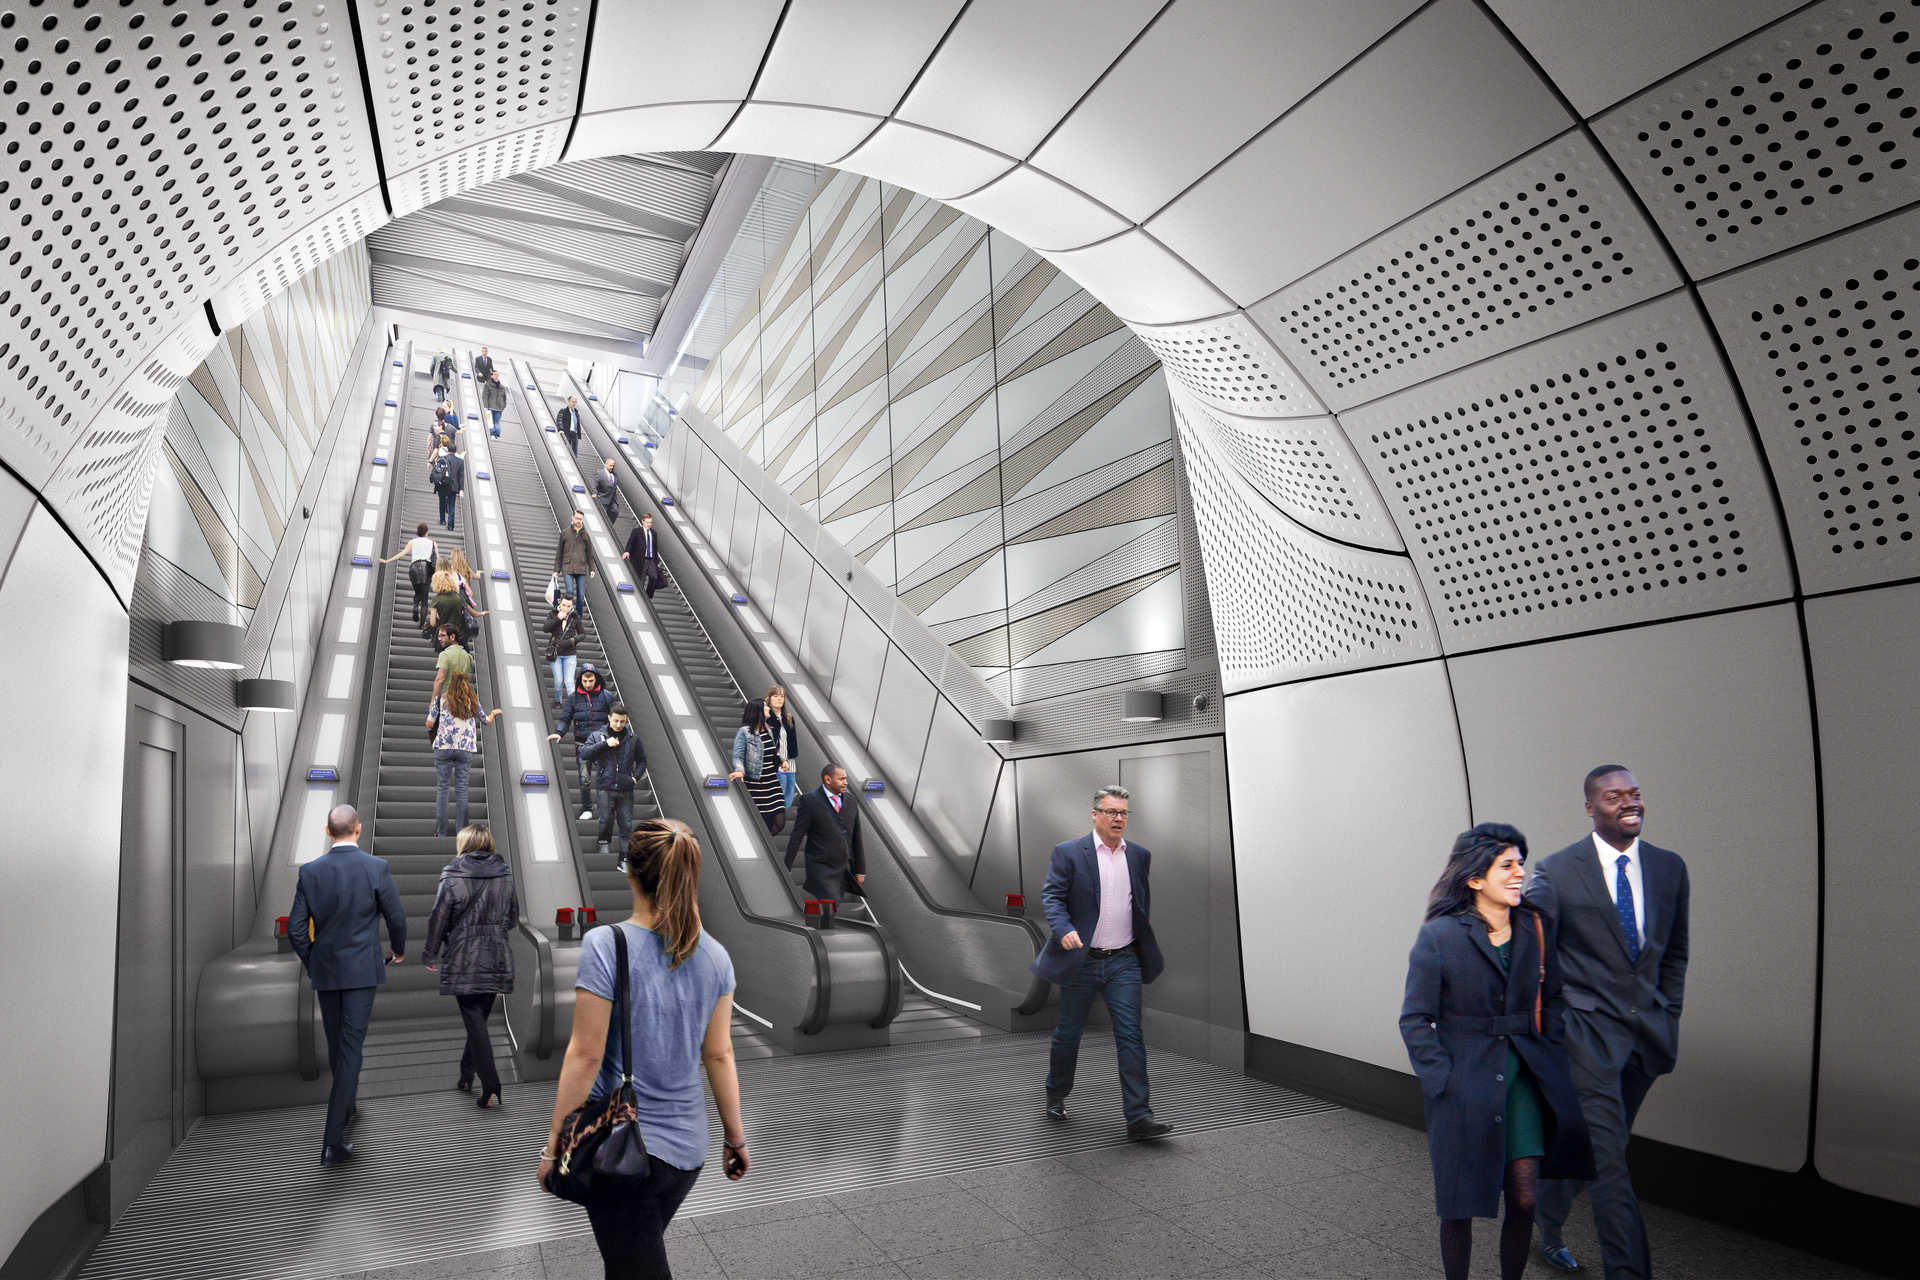 Design In Line : Stations art and public space crossrail s approach to design